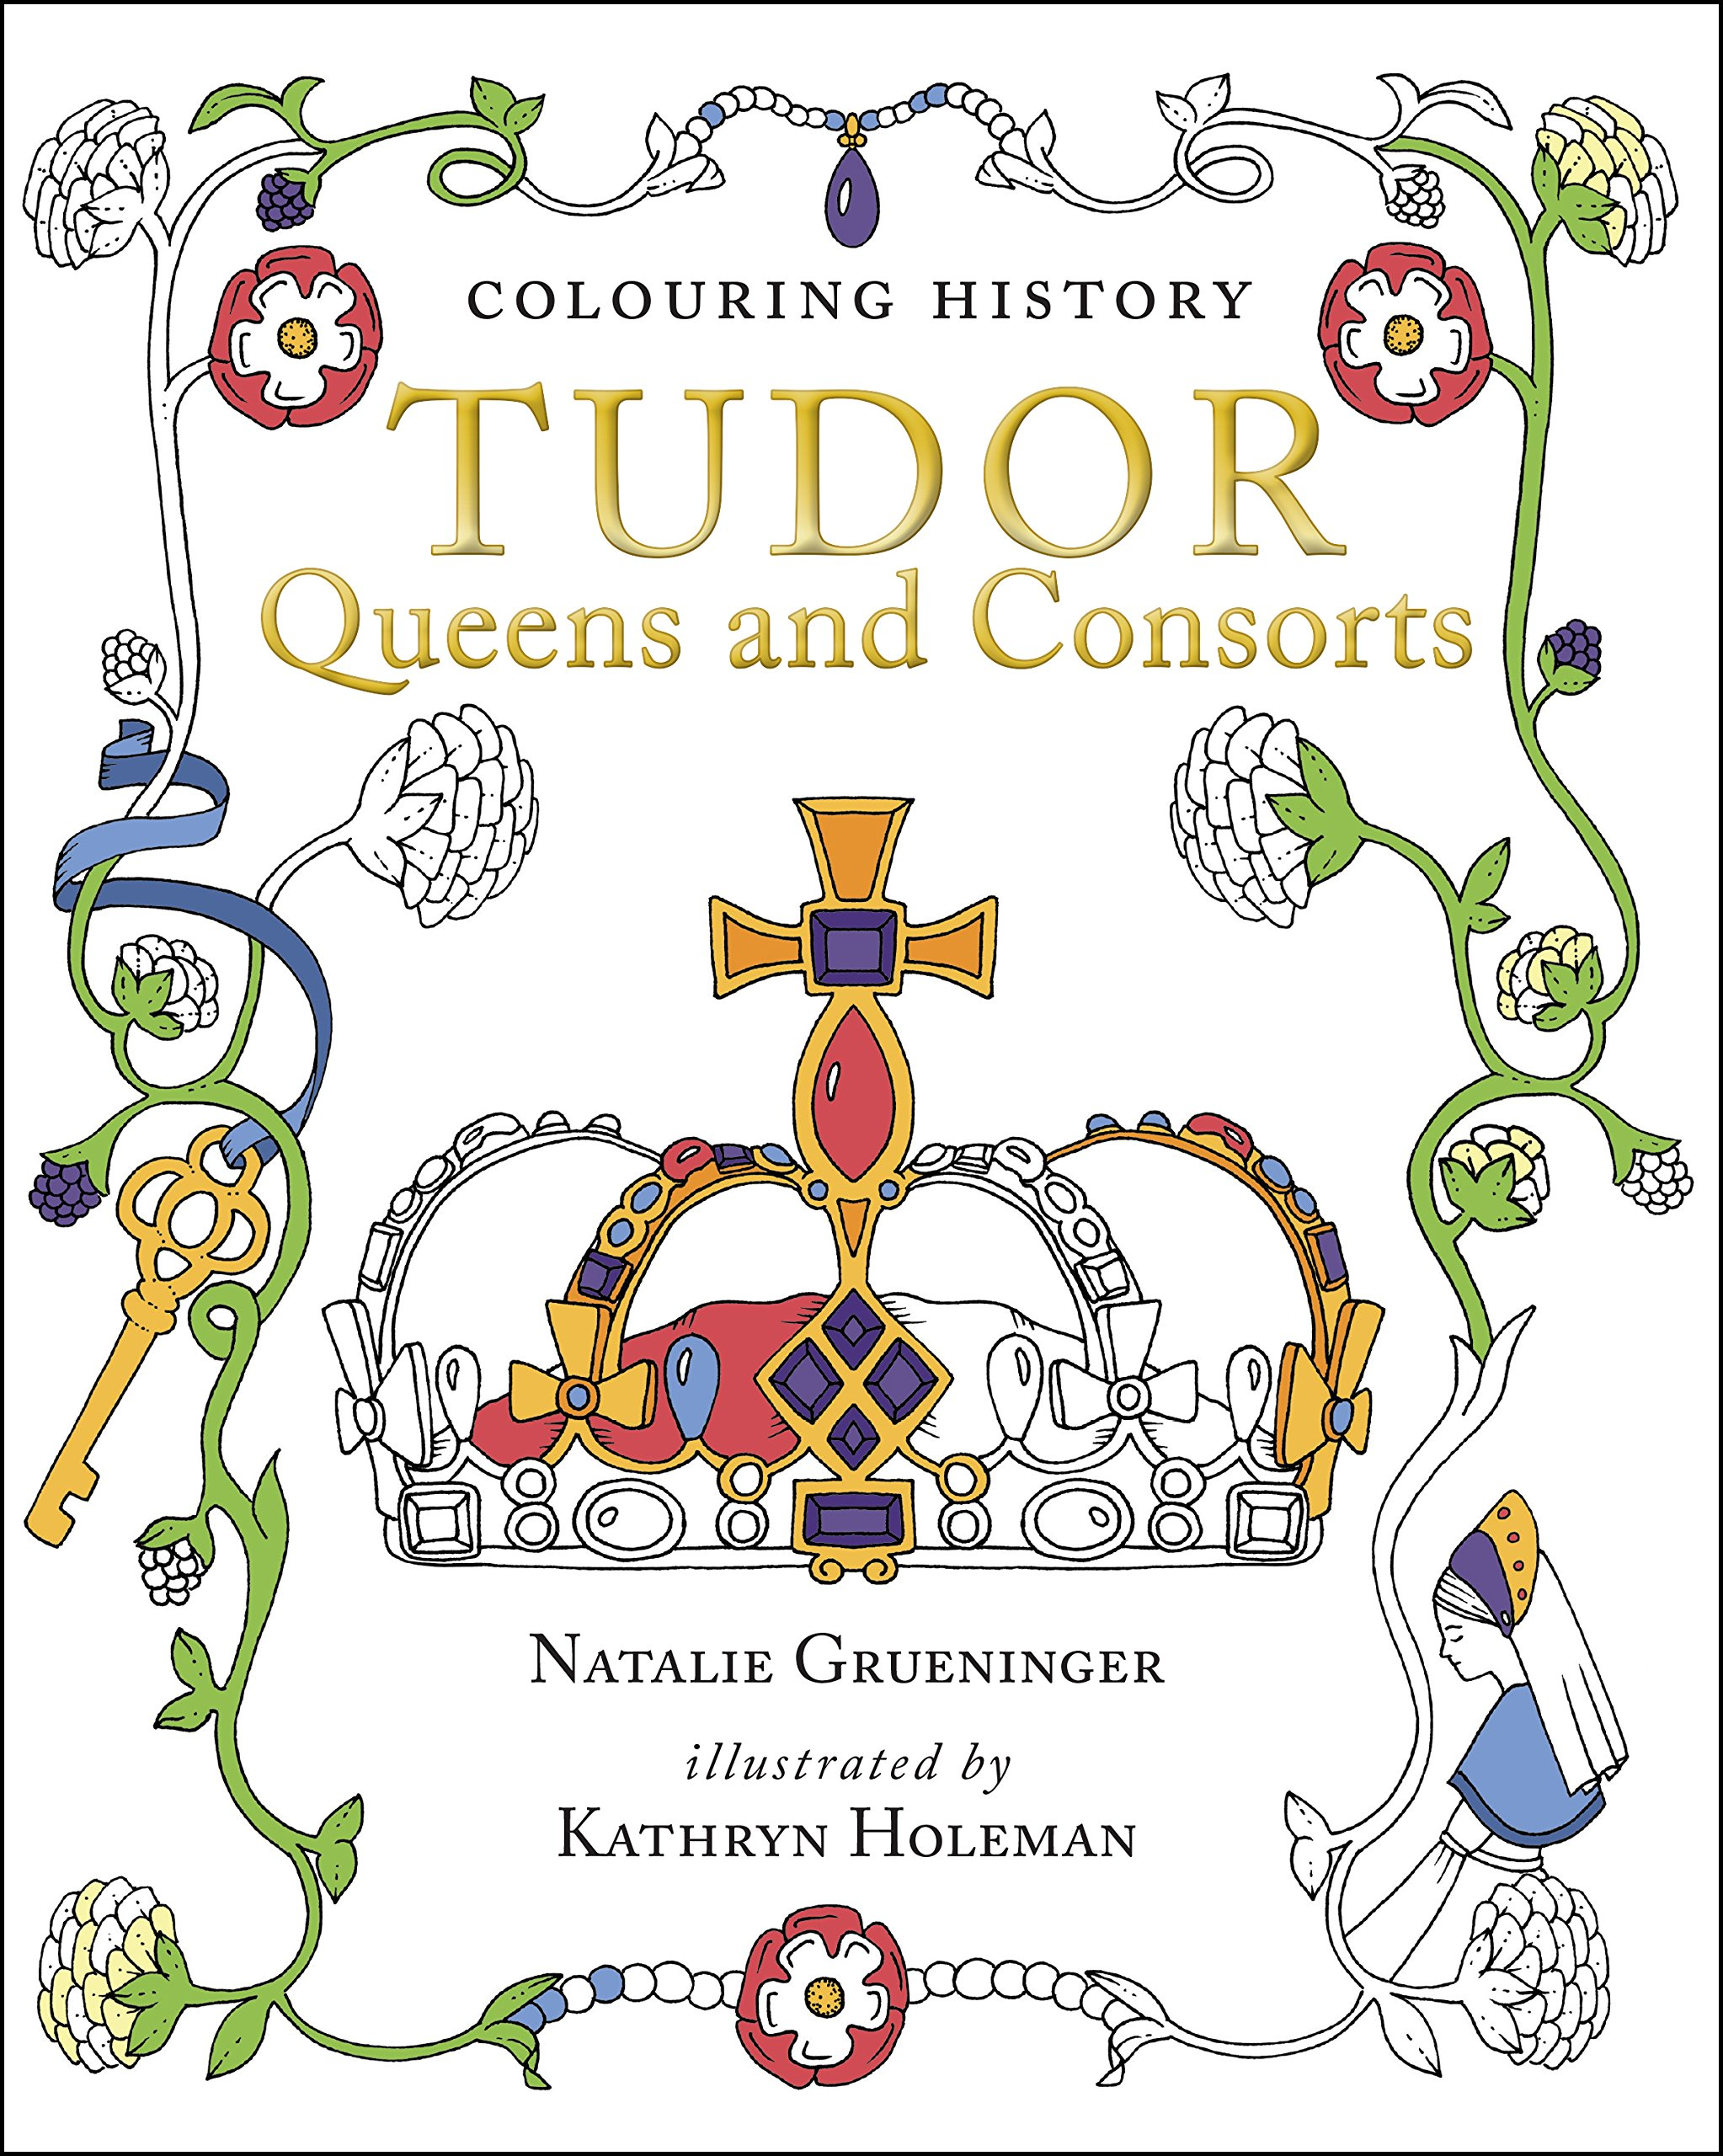 Colouring History: Tudor Queens and Consorts